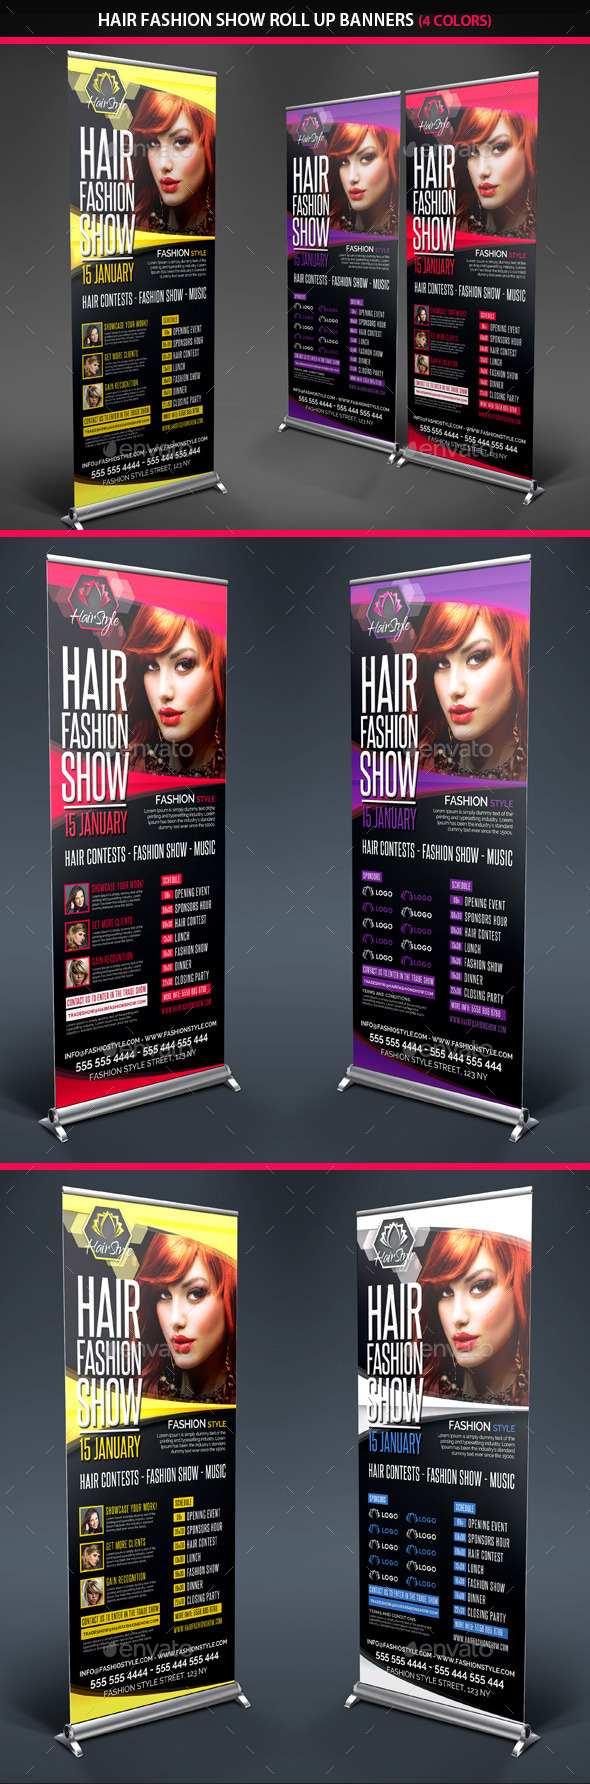 Hair Fashion Show Promotion Roll Up Banners